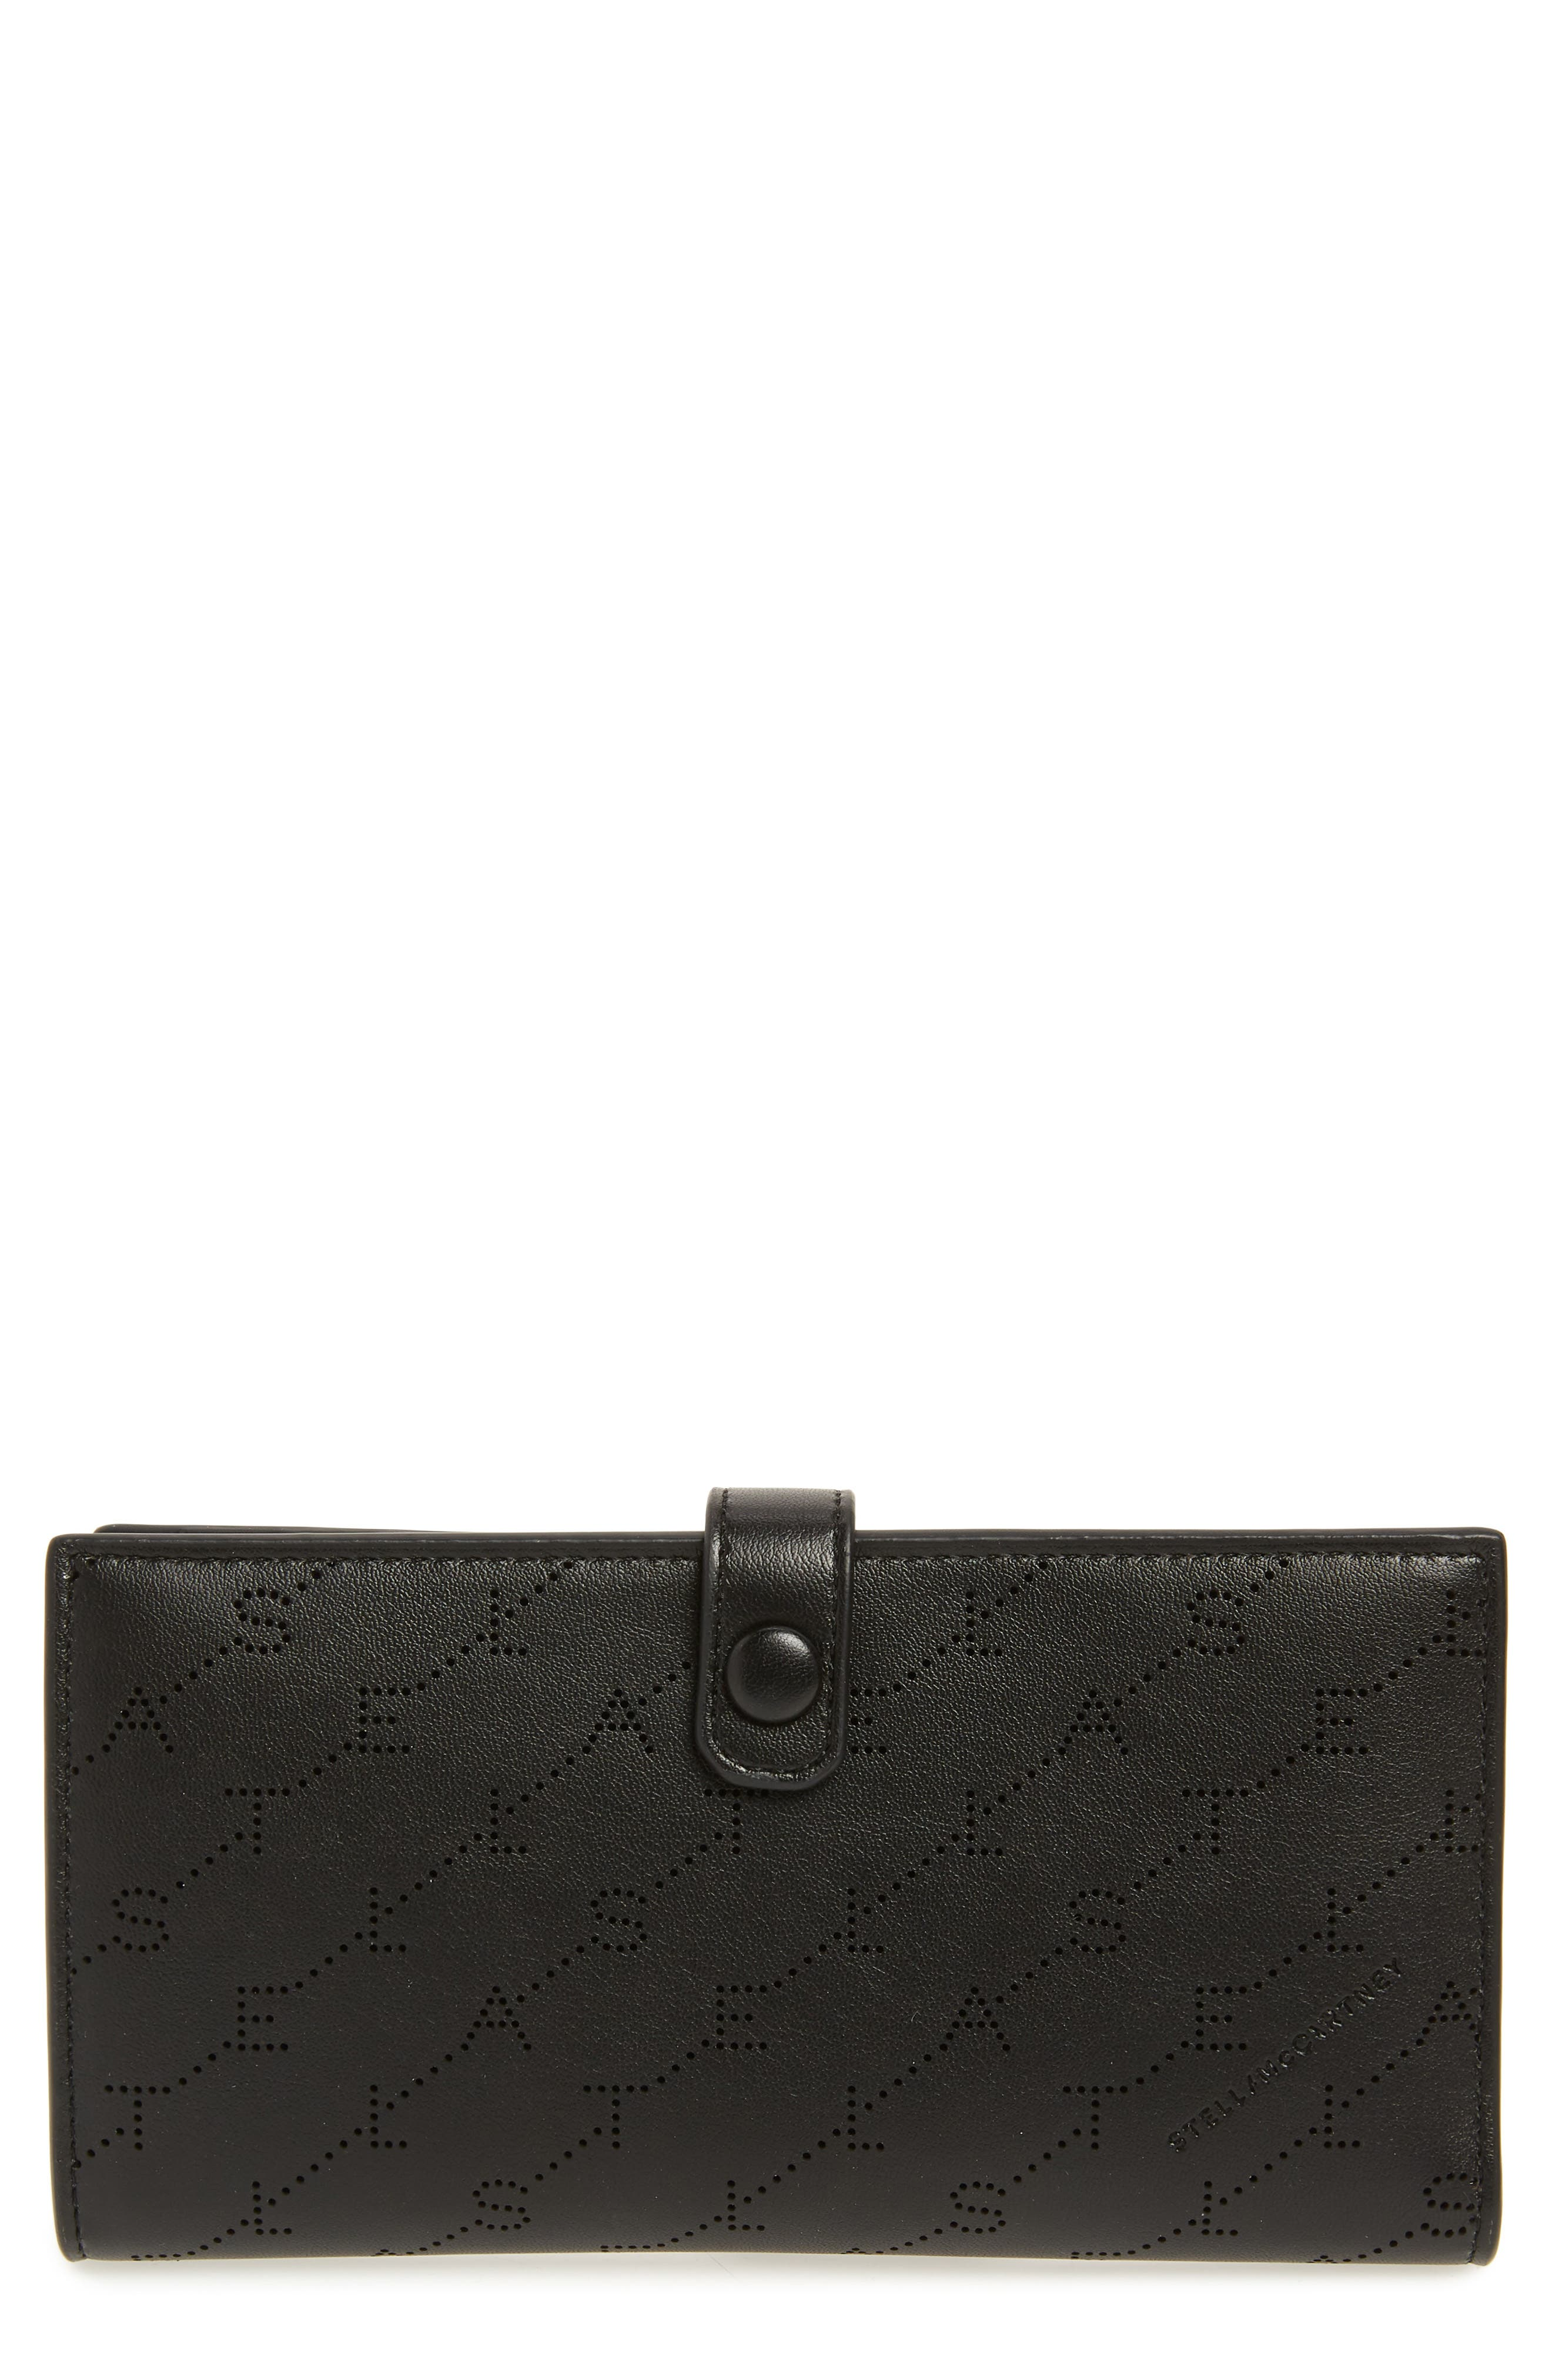 STELLA MCCARTNEY, Logo Perforated Faux Leather Continental Wallet, Main thumbnail 1, color, BLACK